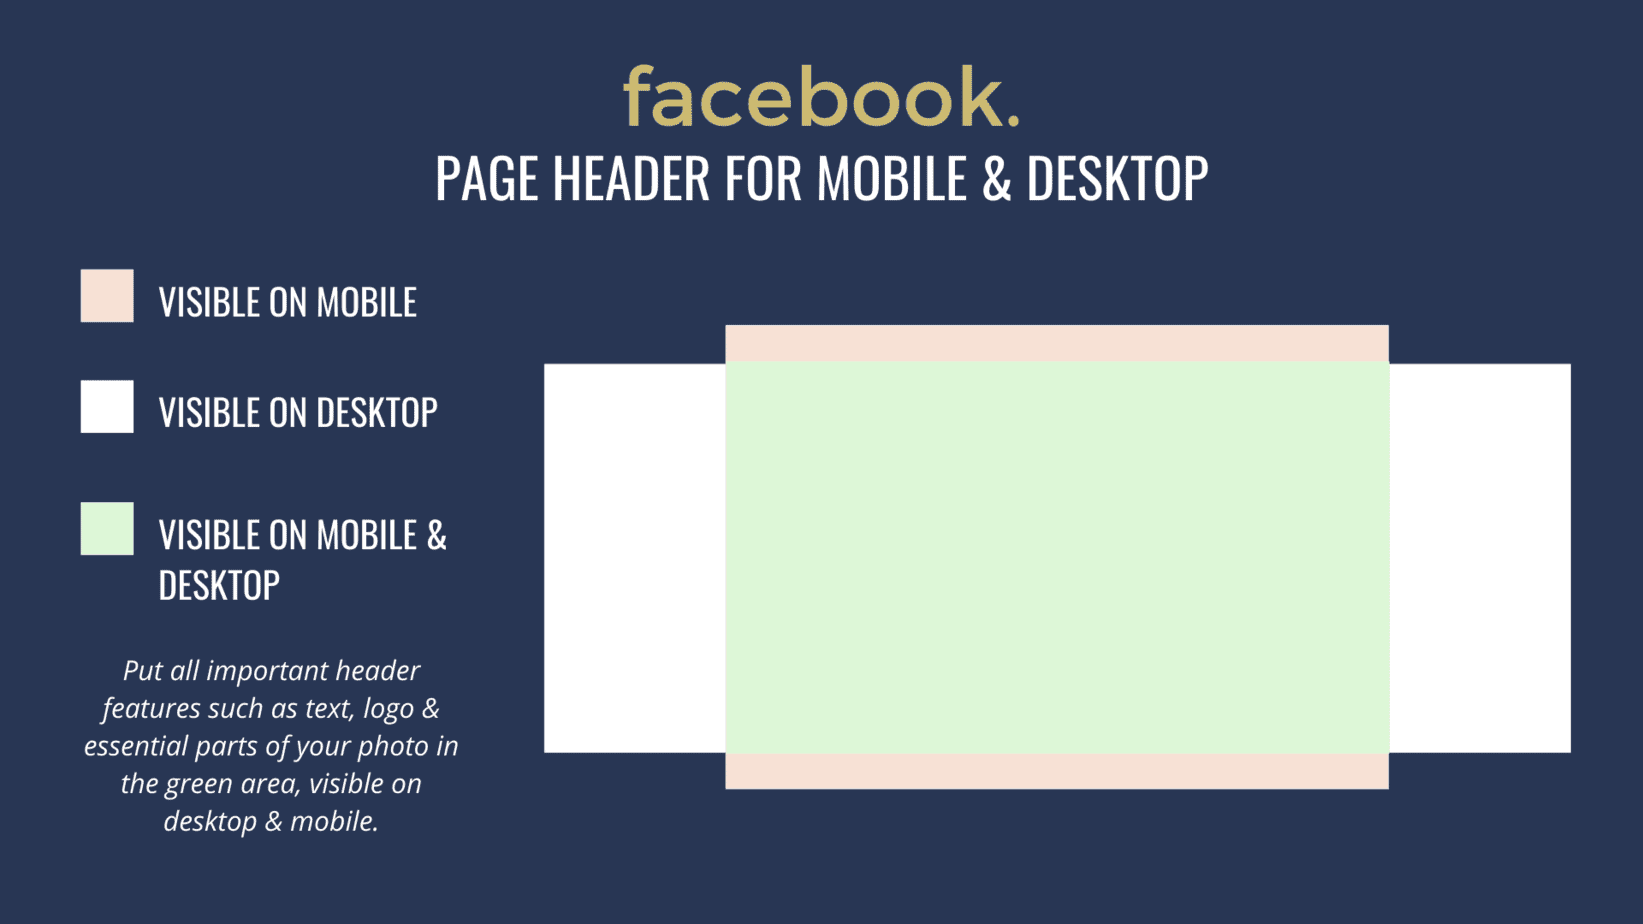 Facebook header size showing the safe area that is visible on mobile and desktop.